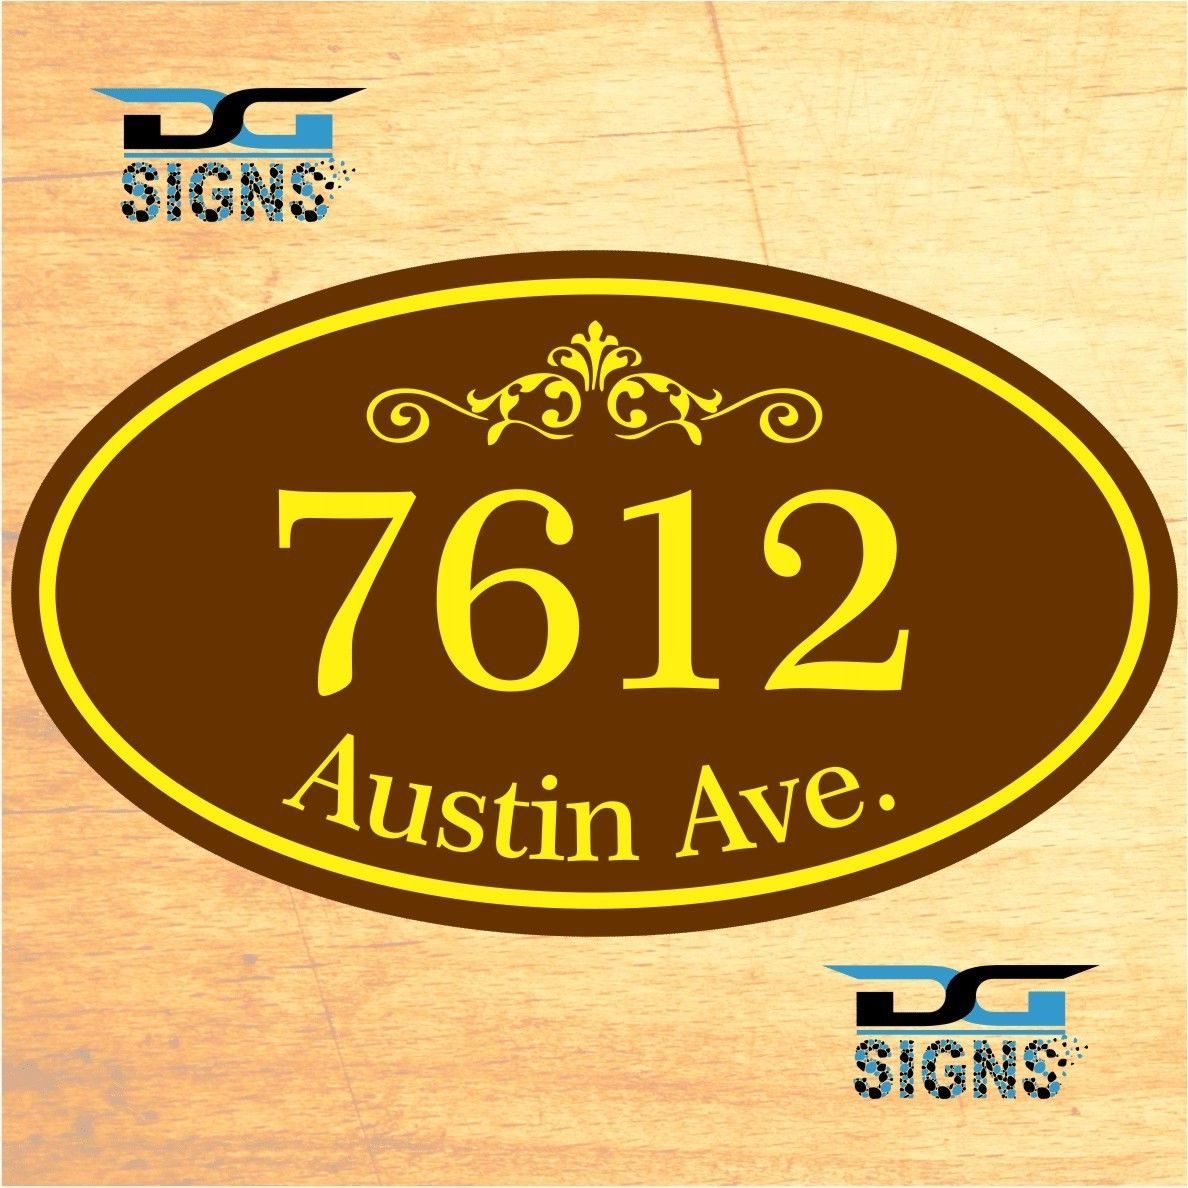 Decorative Signs For Your Home: 3002 Personalized Home Address Decorative Custom Plaque 12